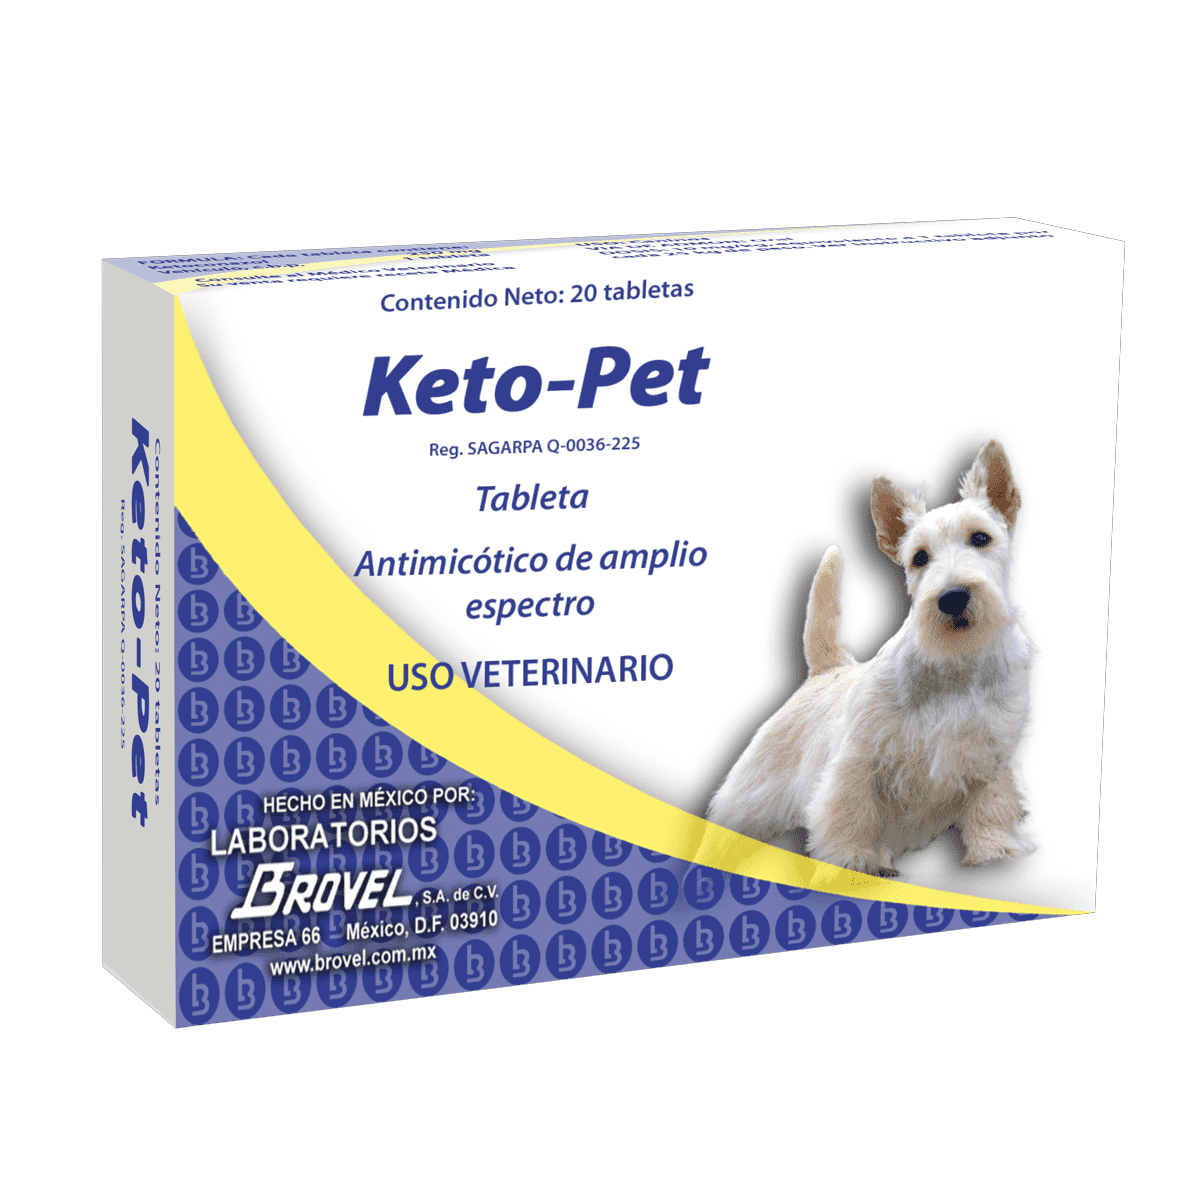 Keto-Pet Tabletas